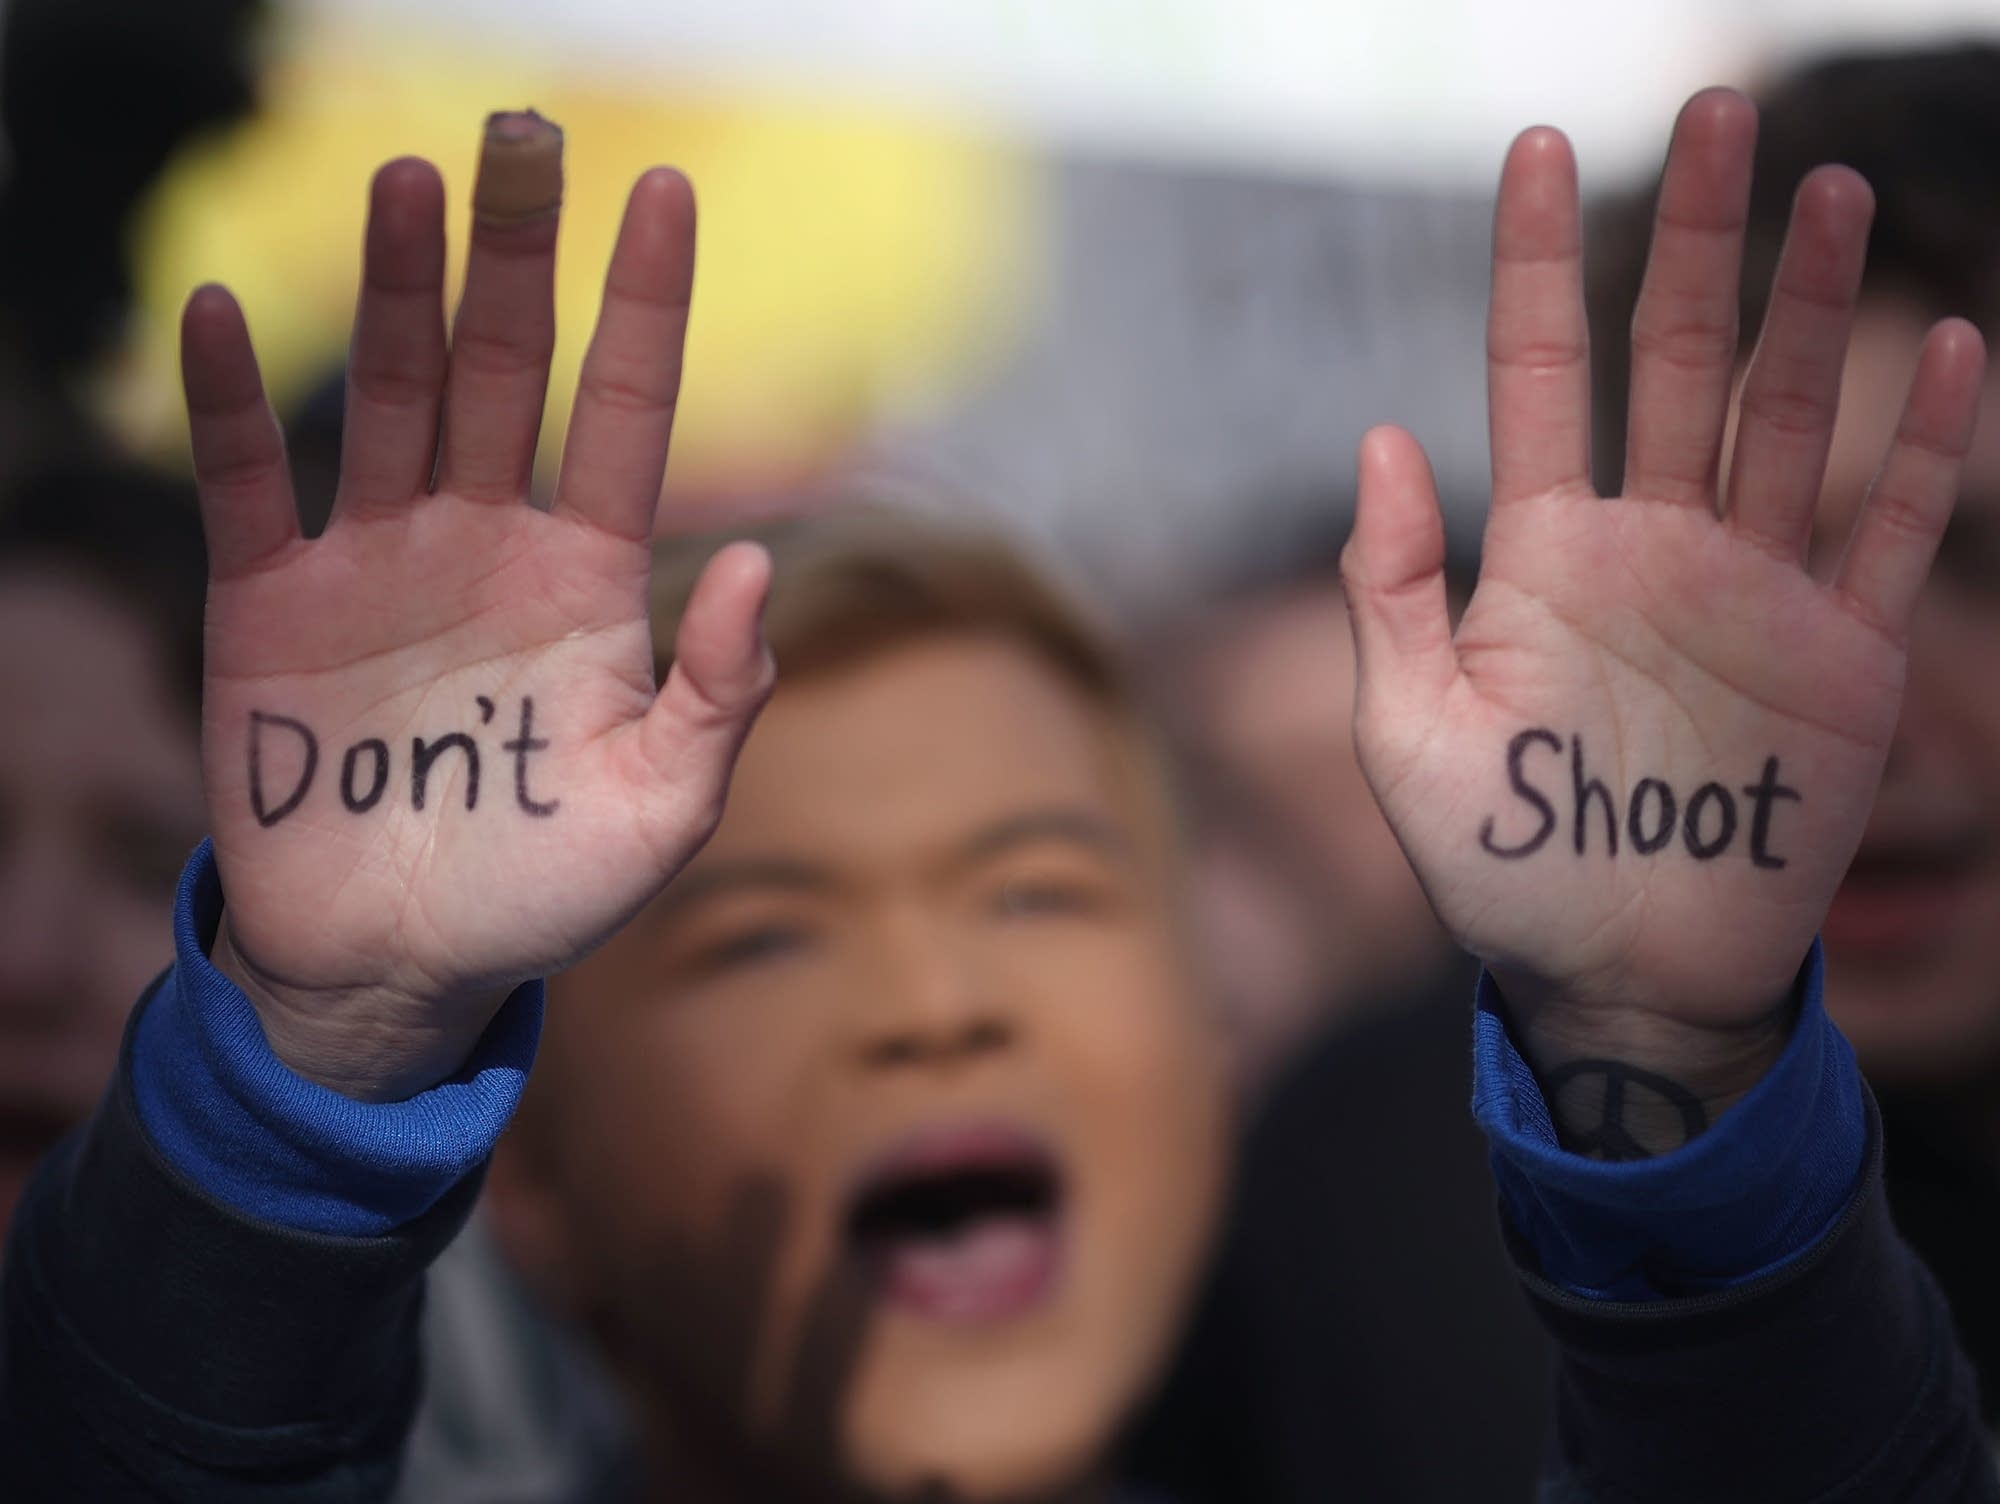 March for Our Lives in Washington, D.C.